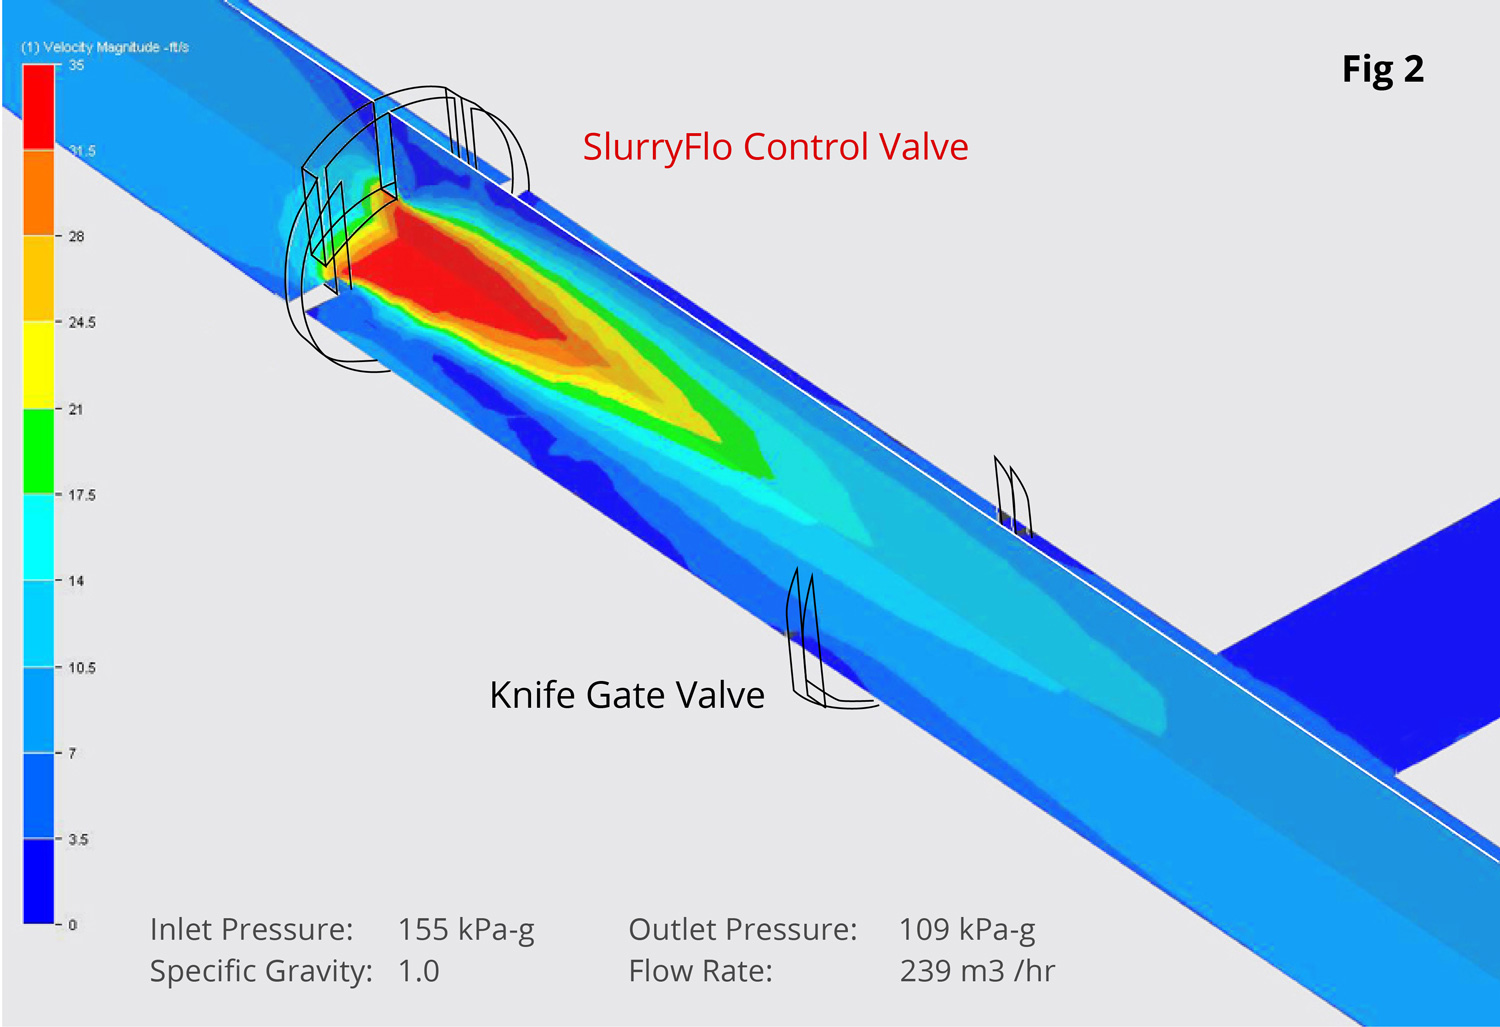 CFD of a SlurryFlo control valve centering abrasive slurry, preventing damage to downstream piping.